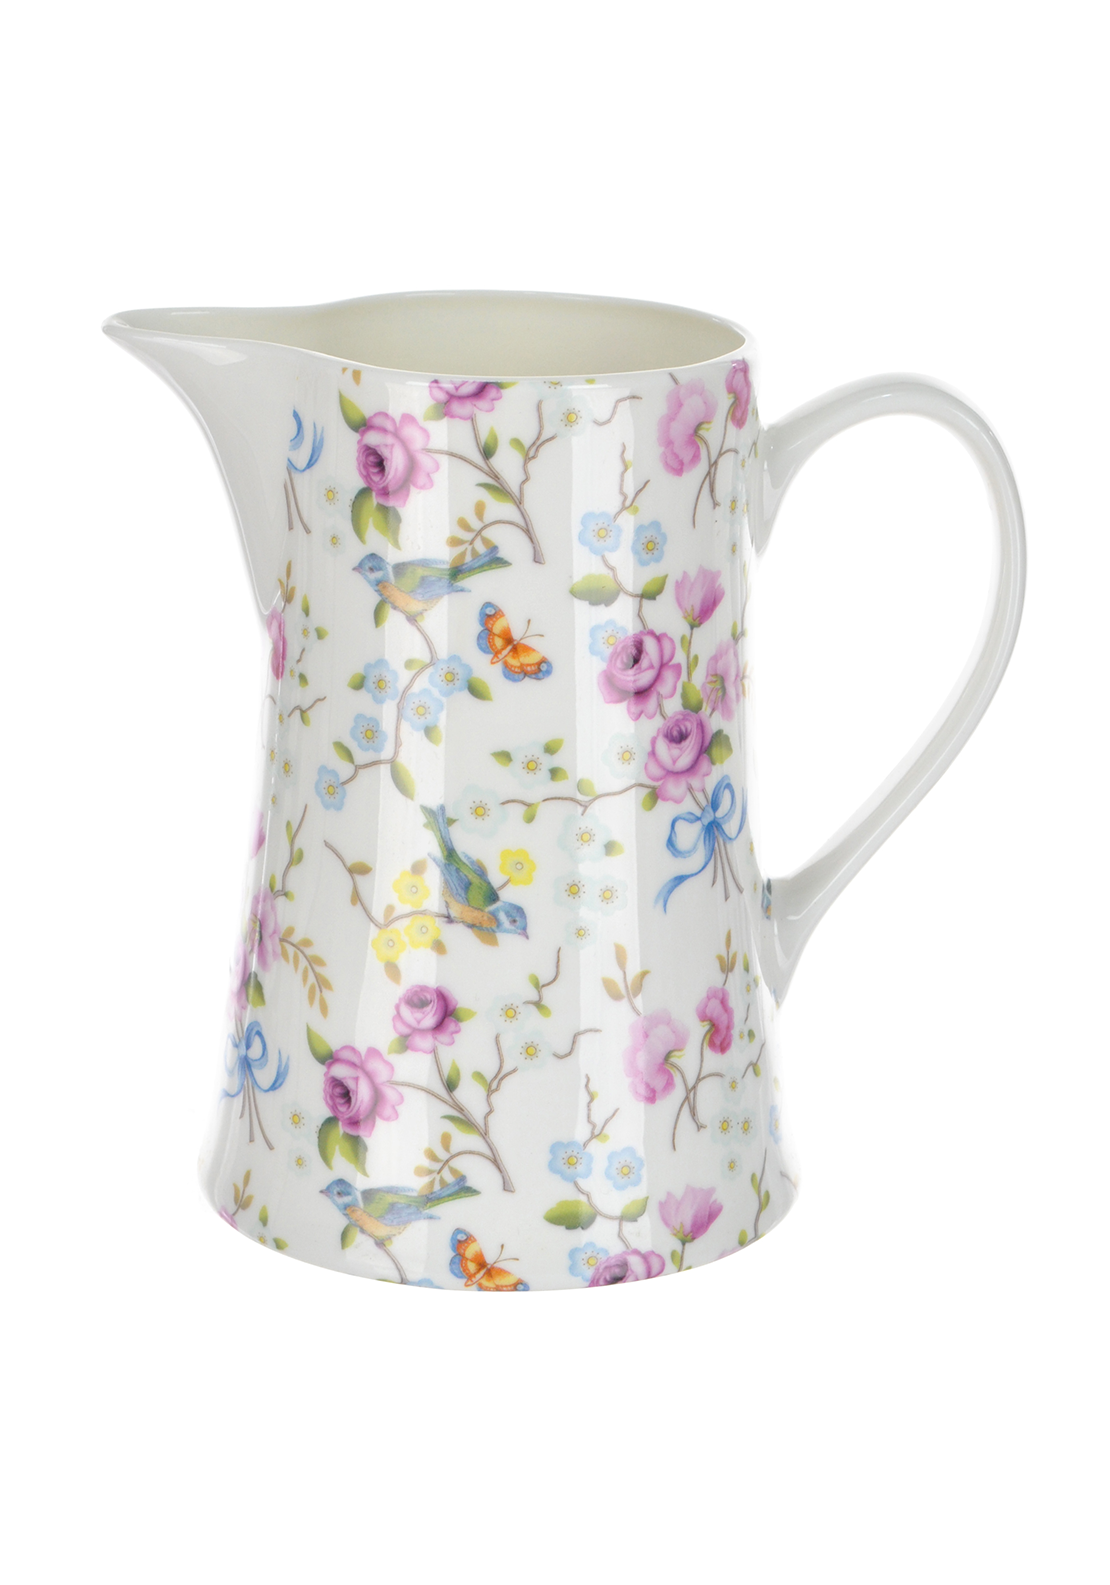 Shannon Bridge Ireland Bird Blossom Small Jug and Sugar Bowl Set, White/Multi Floral Print